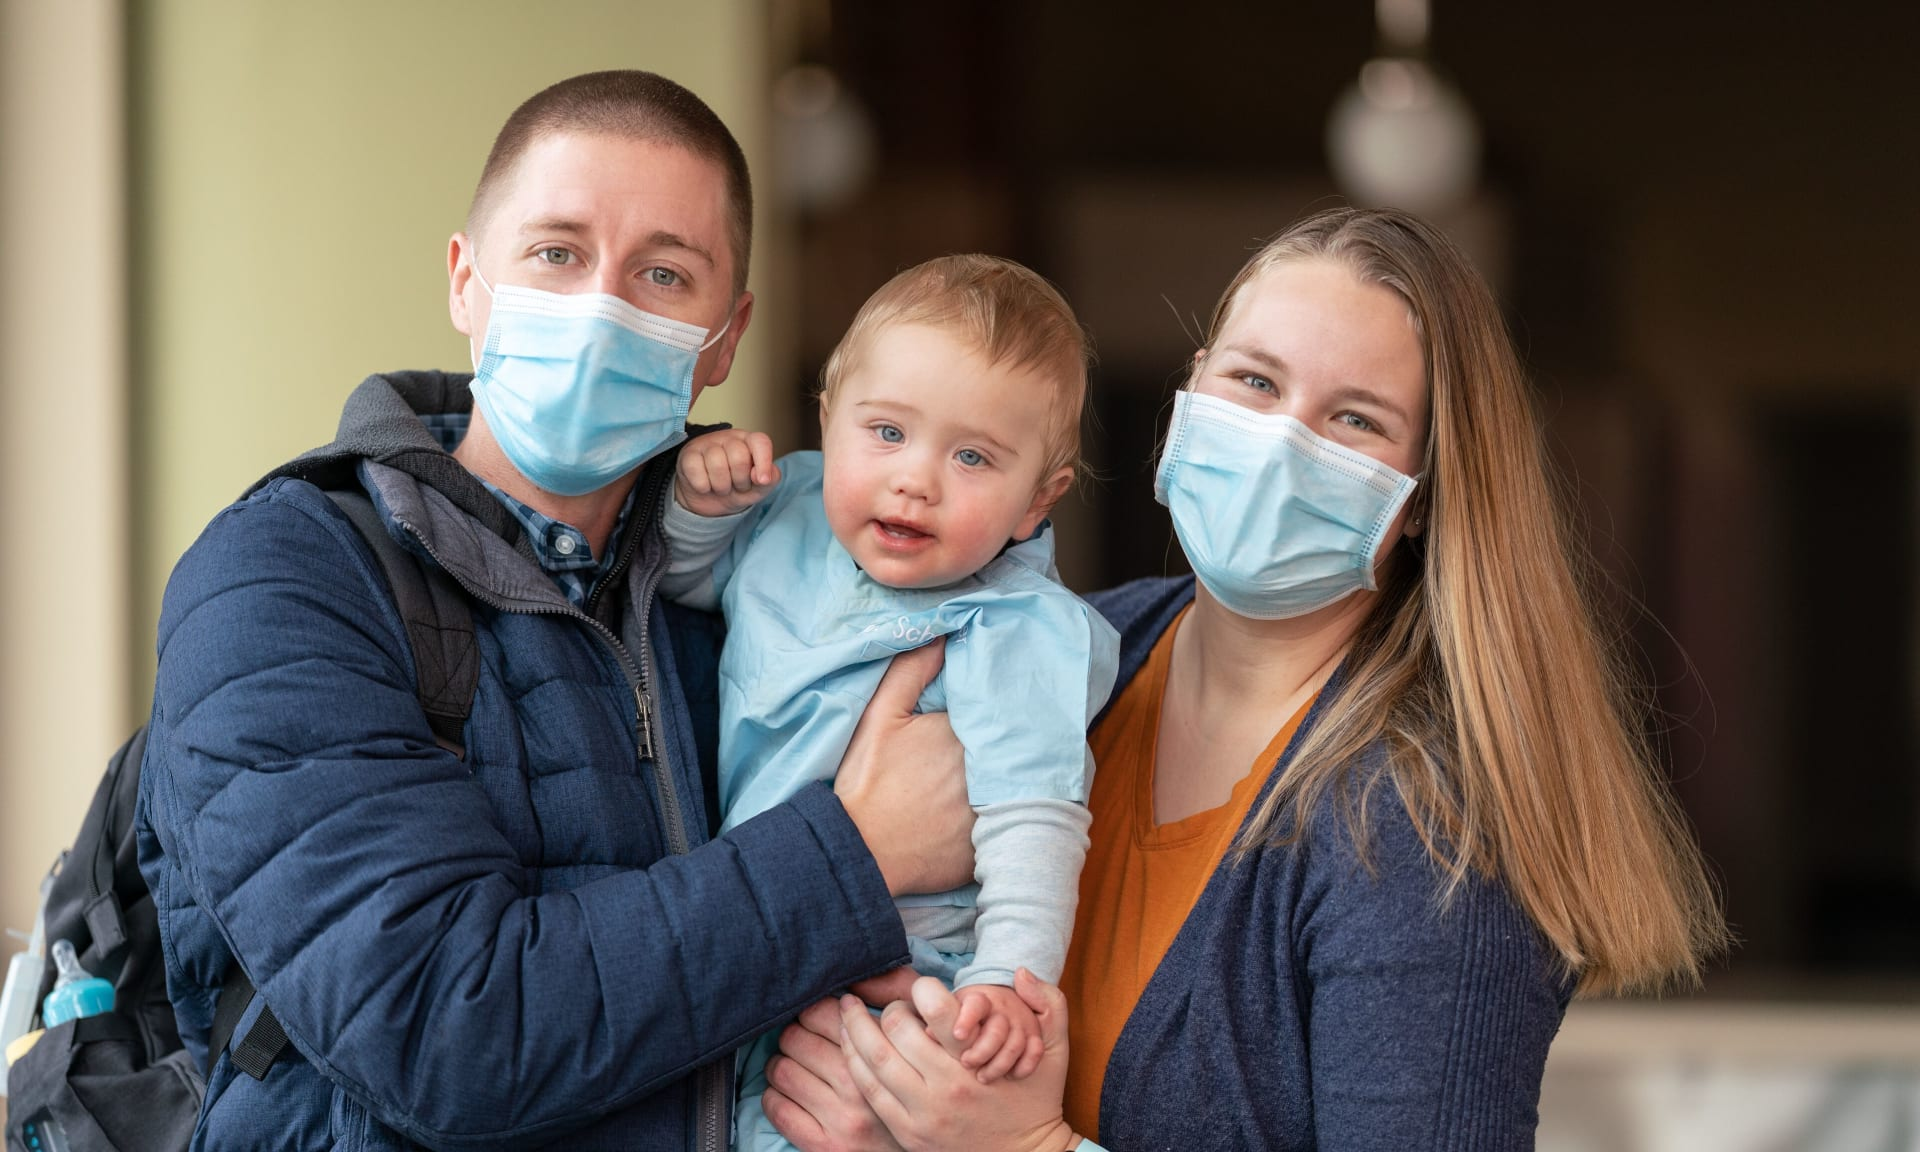 man and woman wearing face masks holding a child